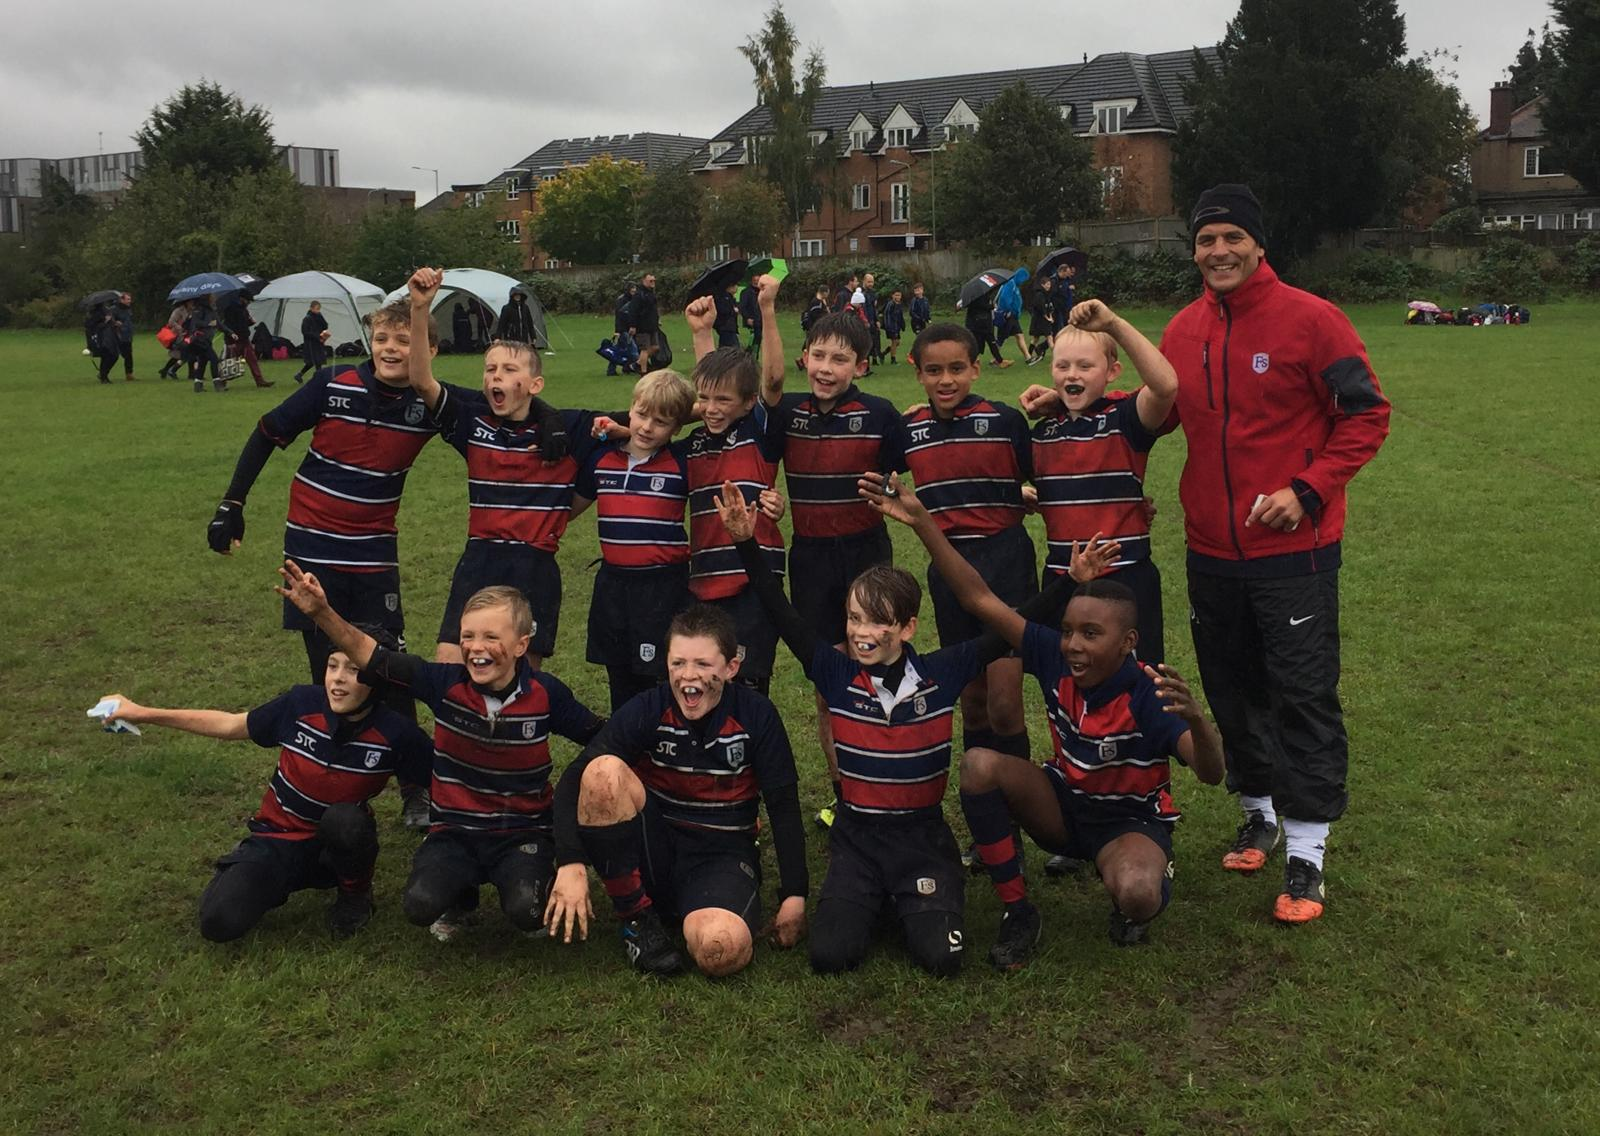 An Outstanding Performance from our U11 Rugby Team!